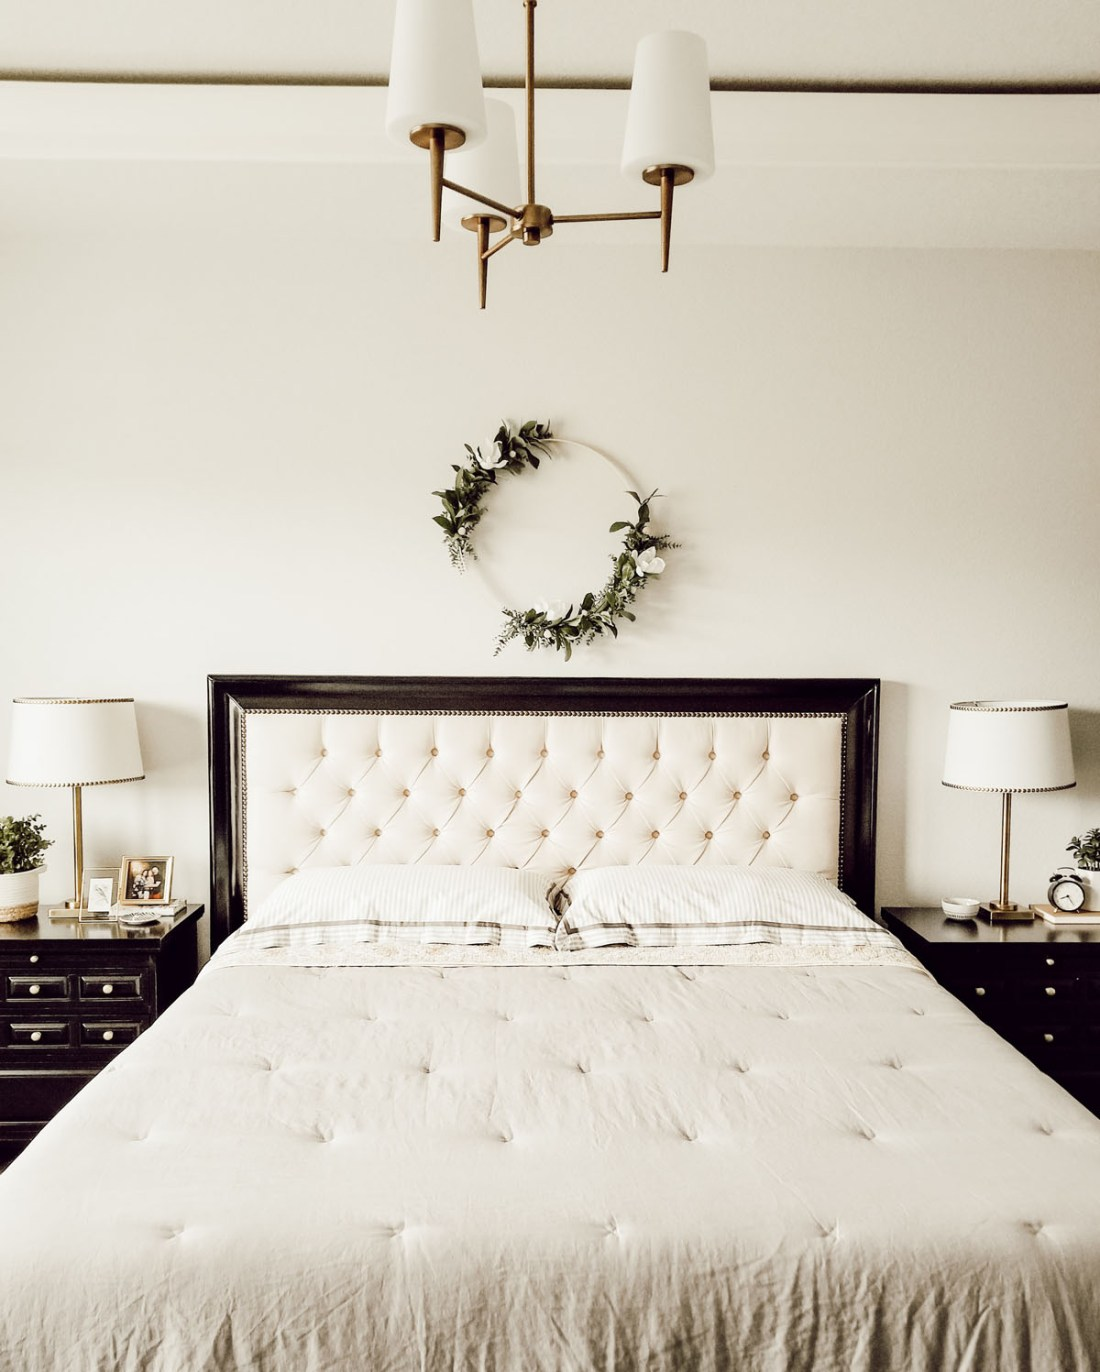 Effortless Farmhouse Bedroom Decorating Ideas 804 Sycamore